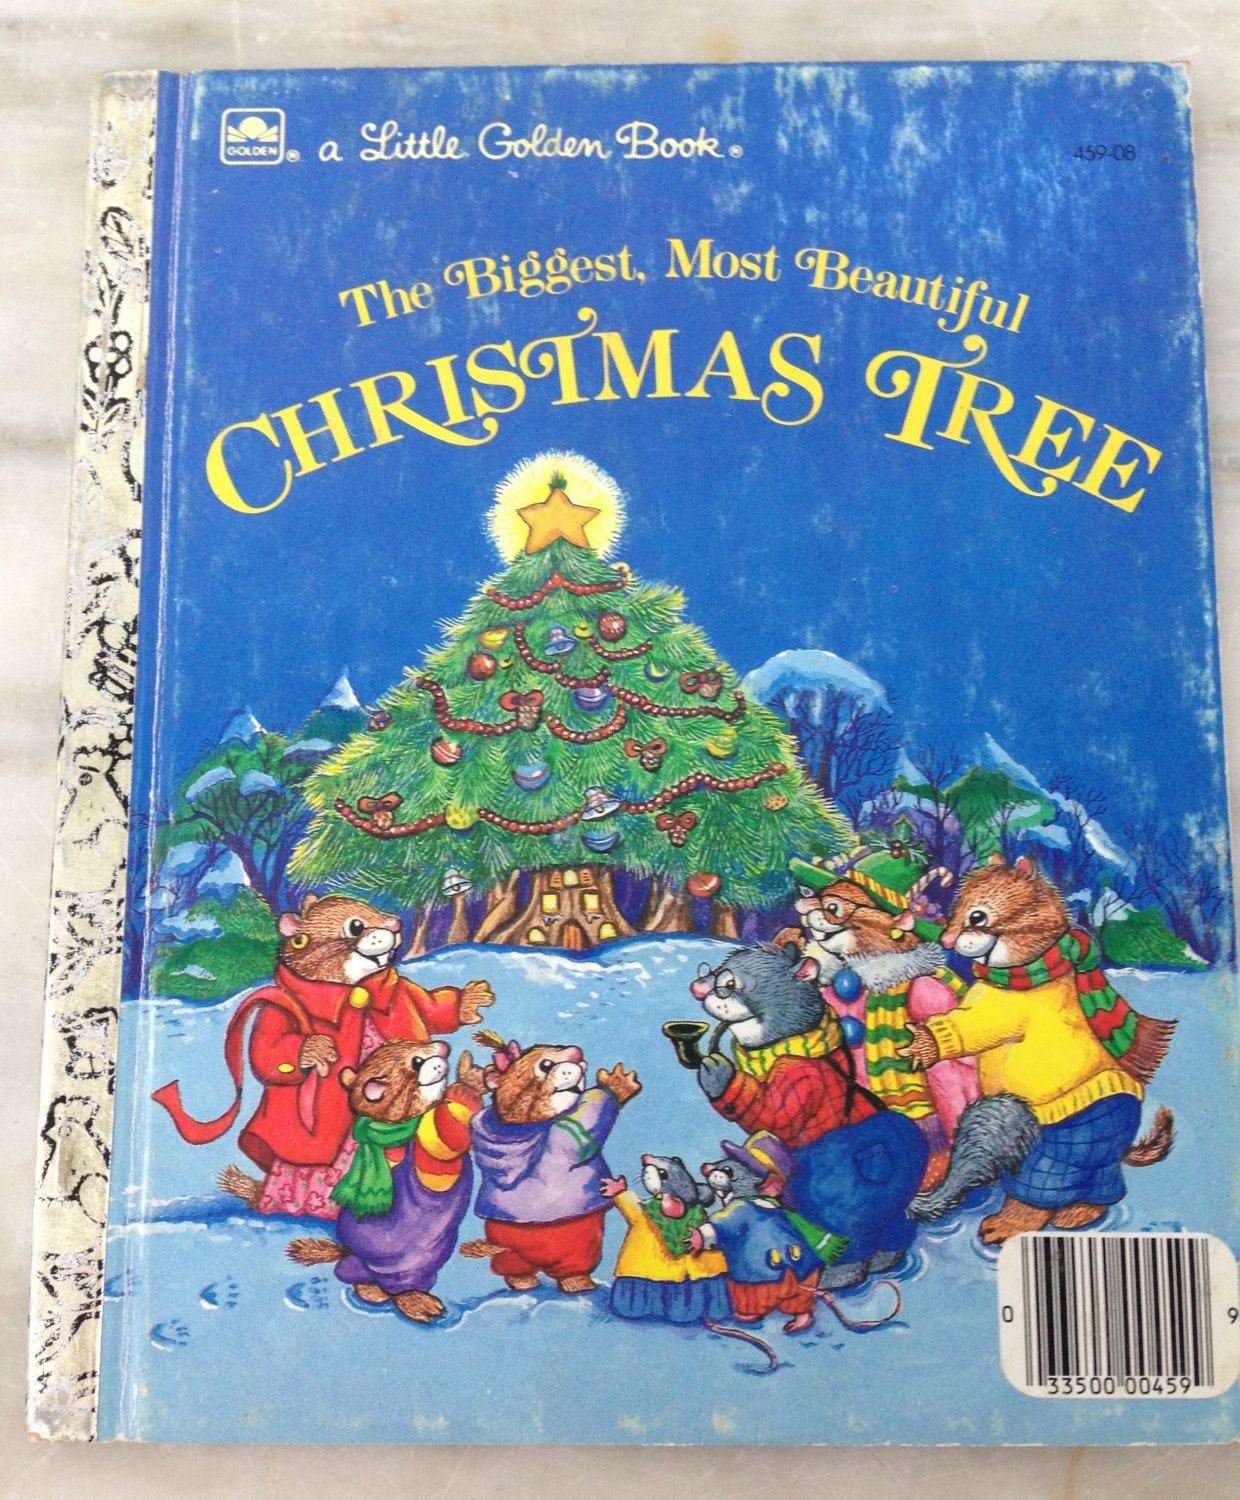 Vintage Little Golden Book The Biggest, Most Beautiful